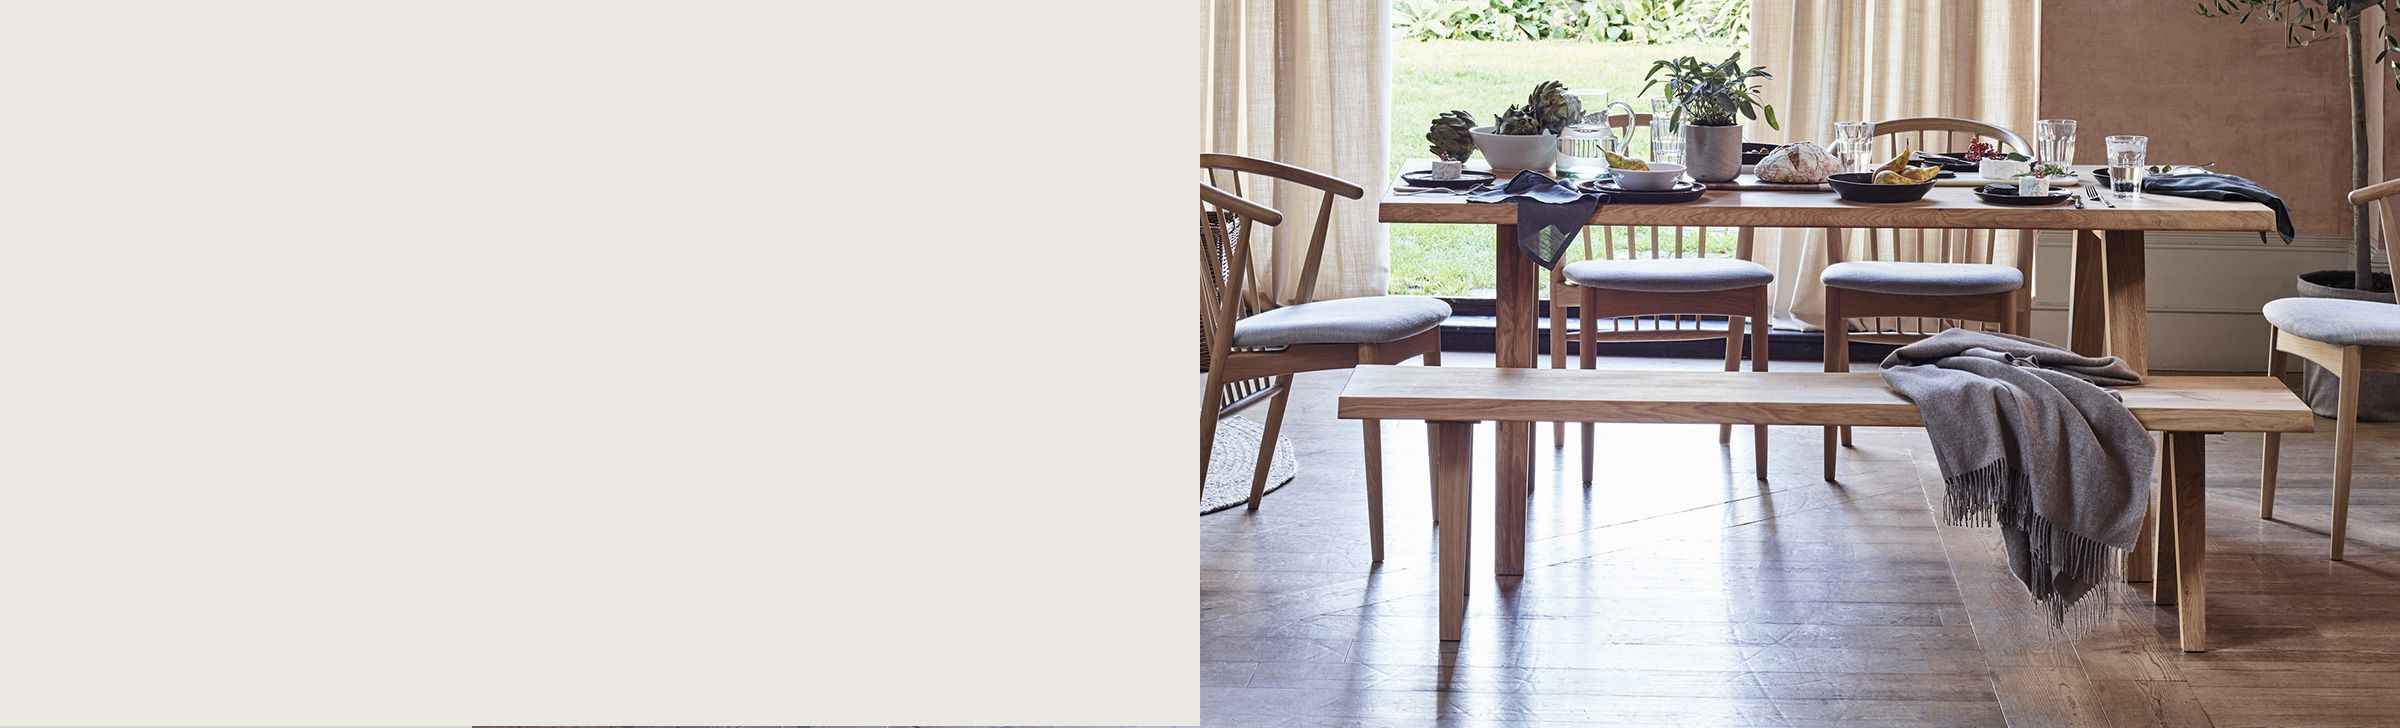 Make Mealtimes More Sociable With A New Dining Table From Space Saving Oak Designs To Round Extendable Tables